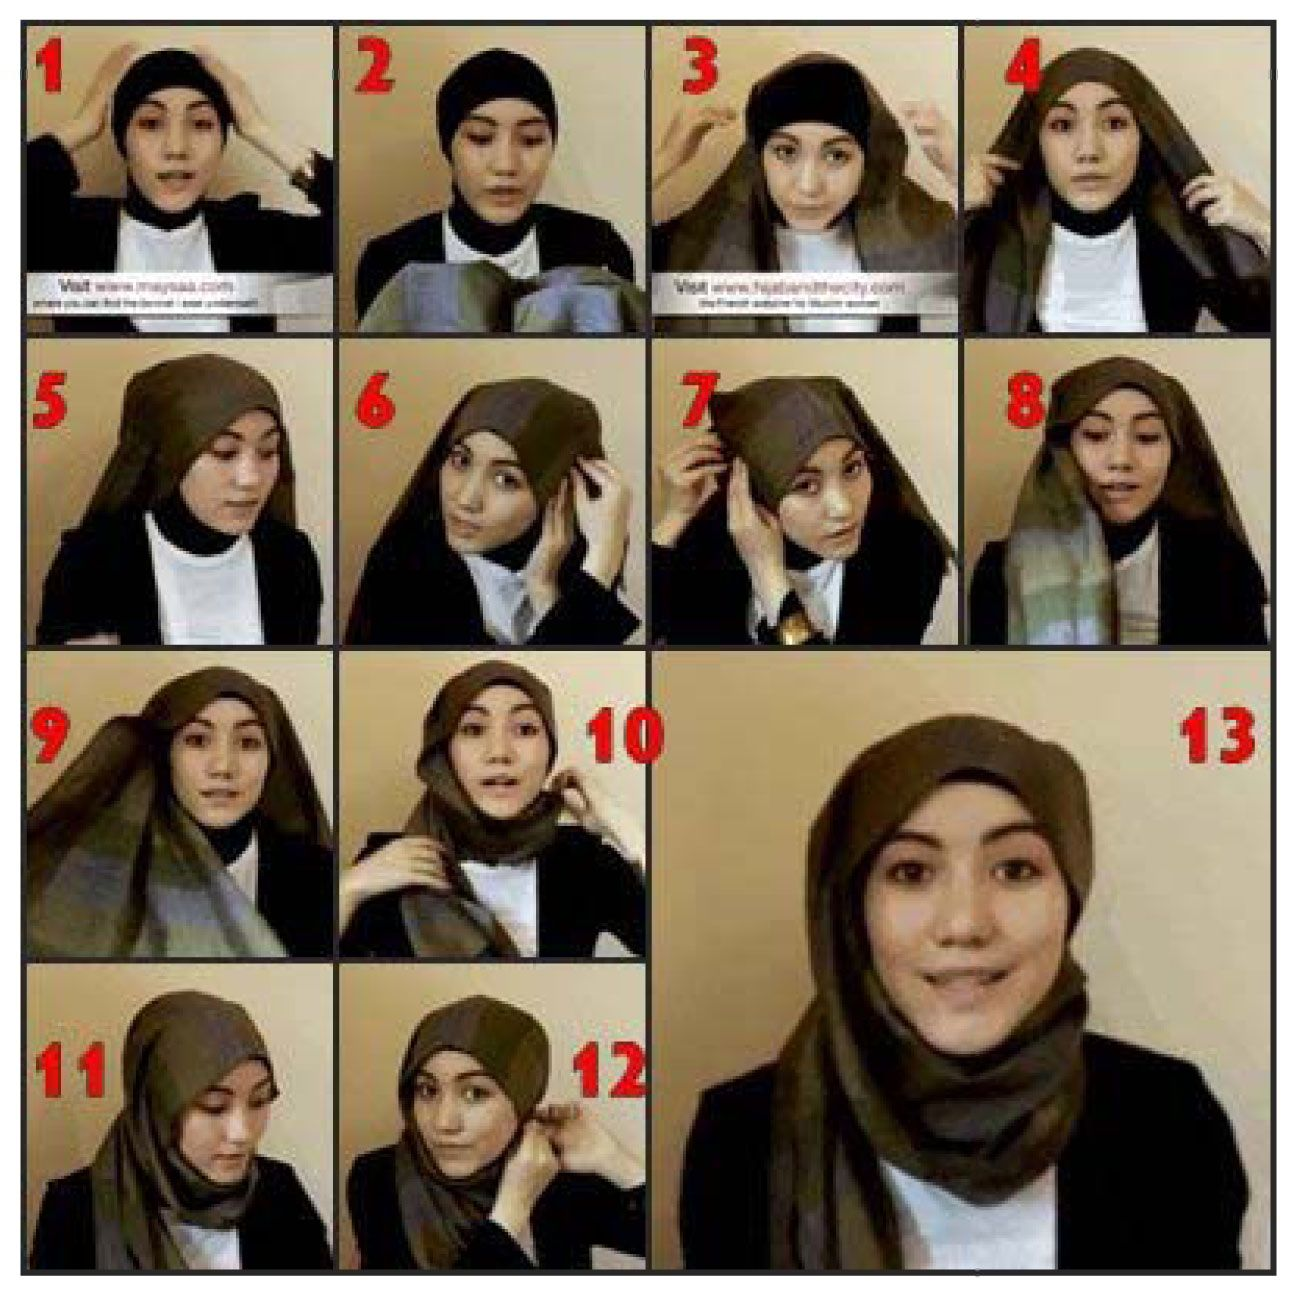 Tutorial Hijab Made In Hana Tajima Part Twojpg 12931297